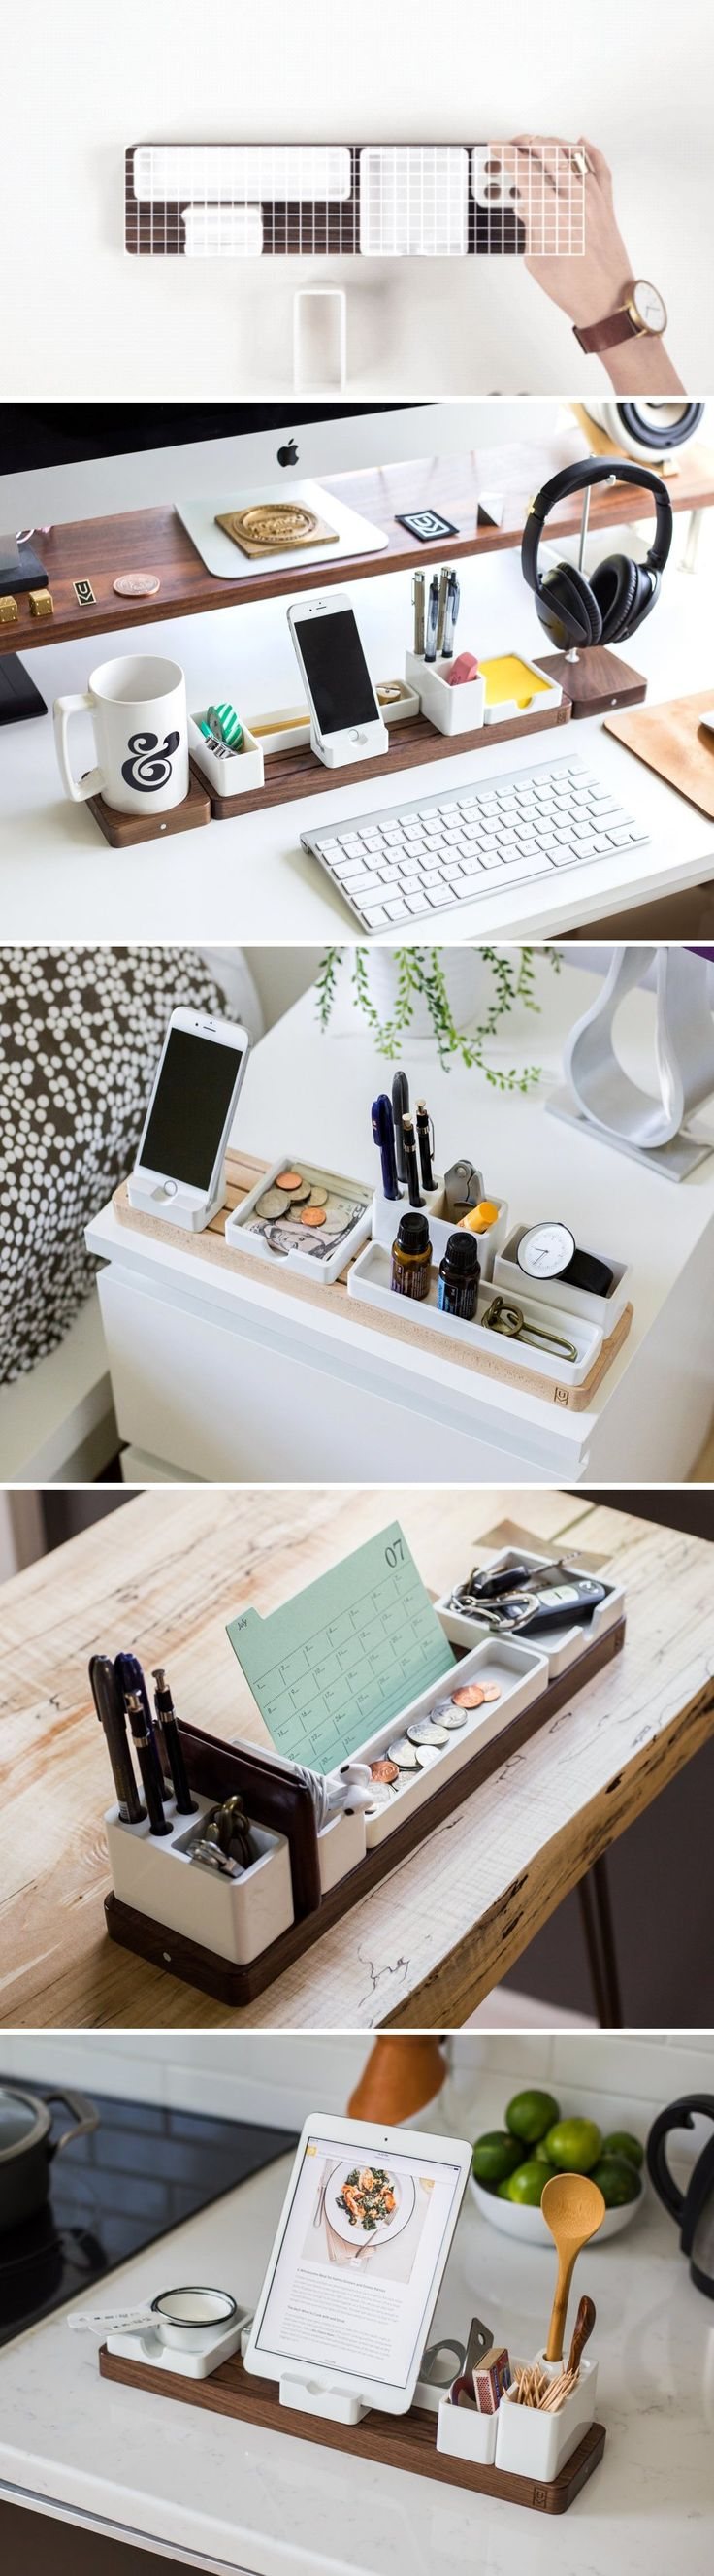 A modular desk organizer that can adapt in hundreds of ways and can organize your space, whether you have more clutter or less, while keeping everything accessible, whether you're left-handed or right-handed. Buy now!